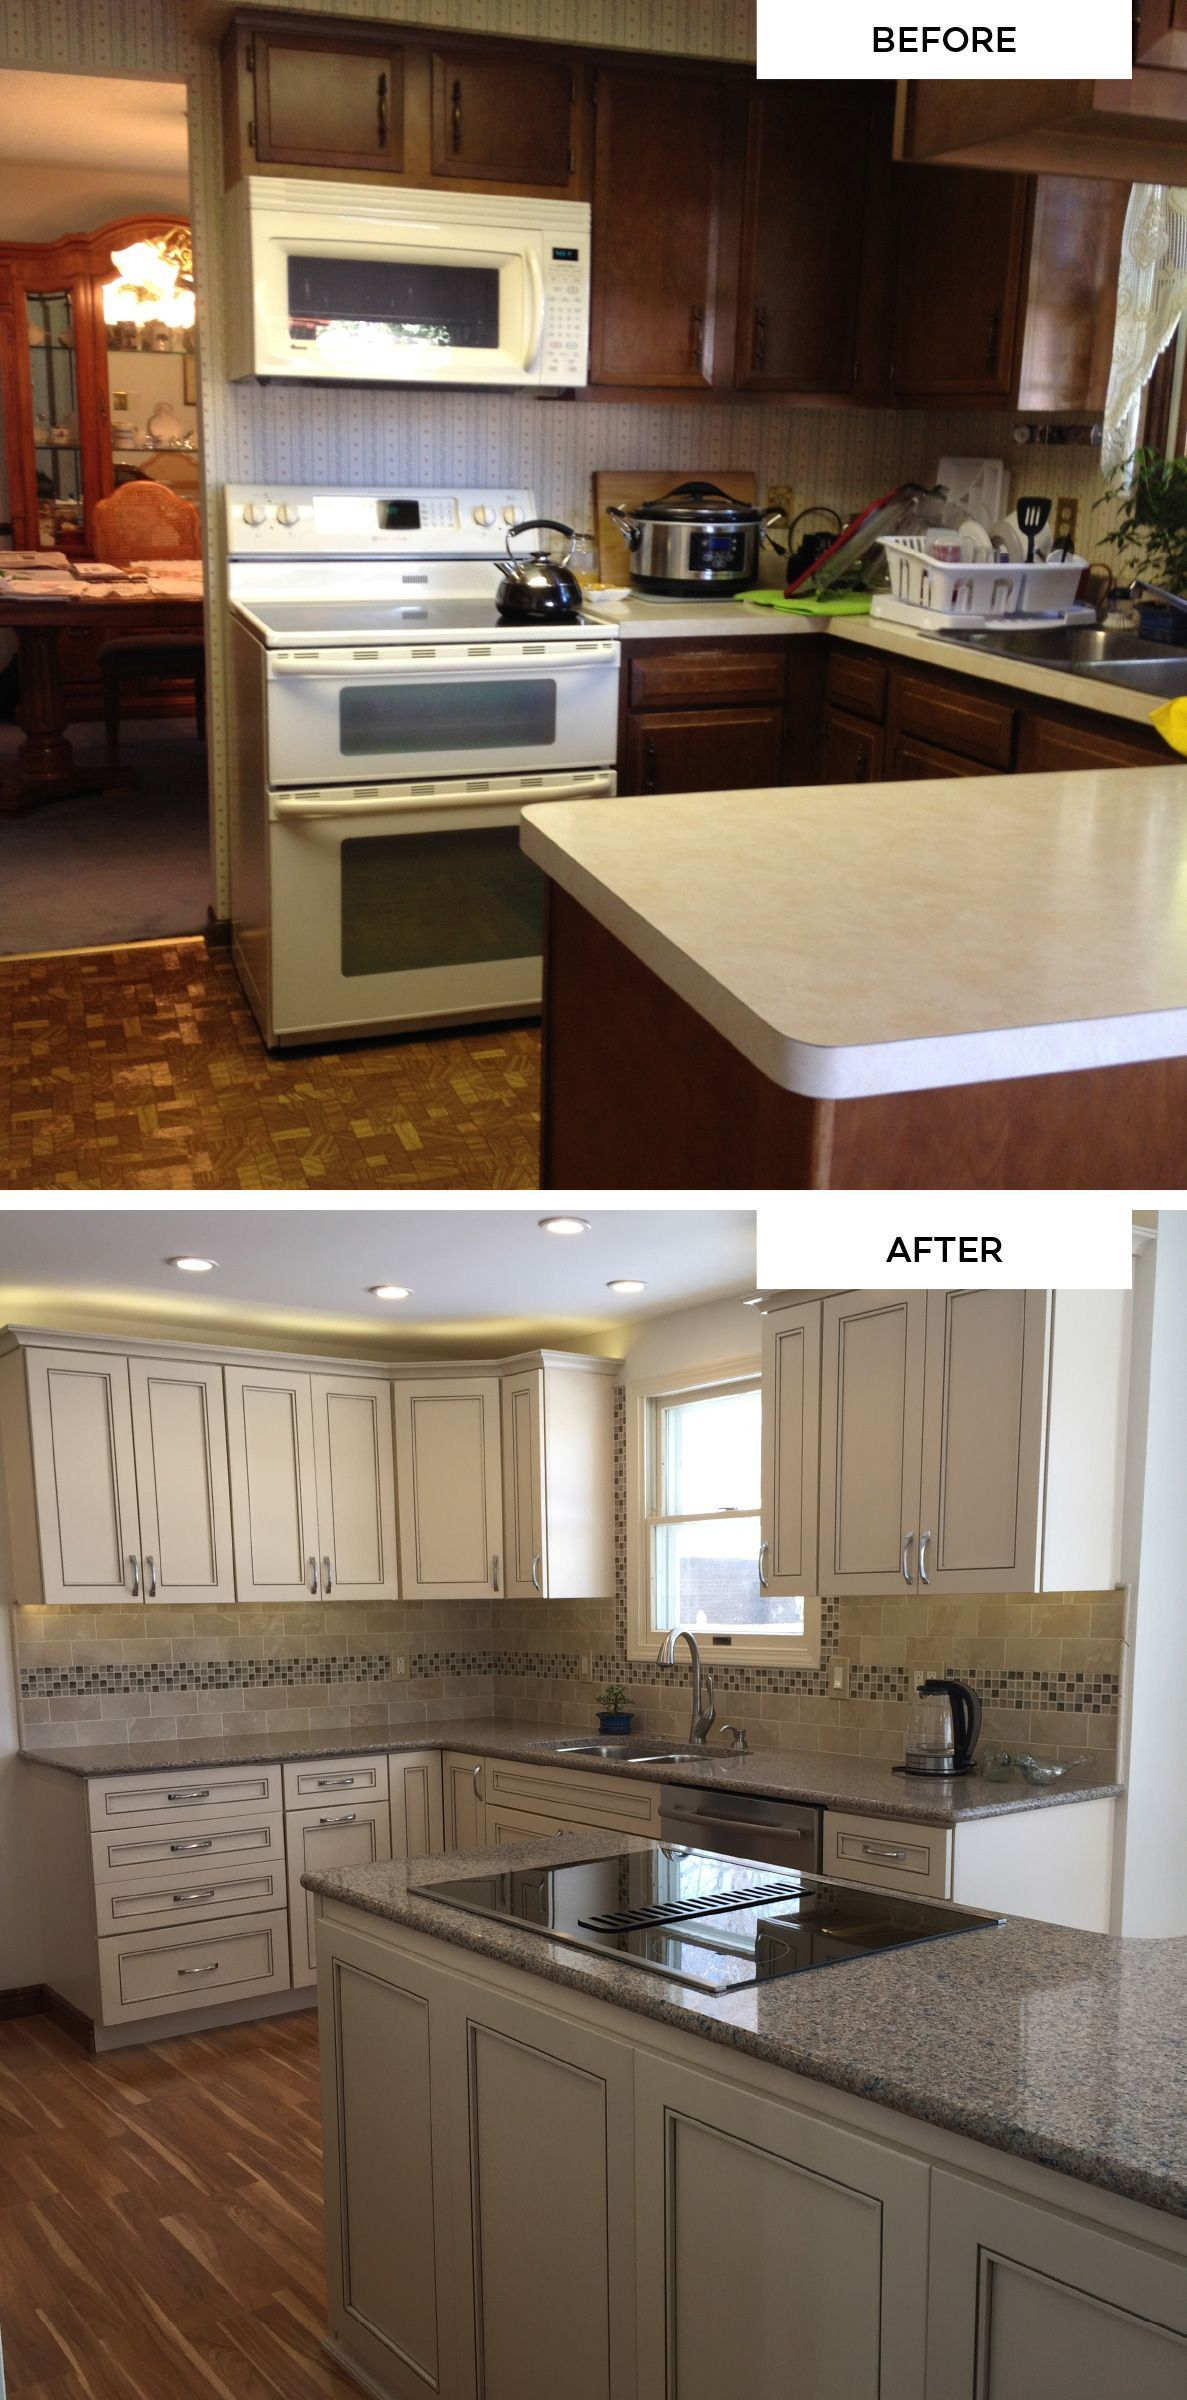 Create Your Dream Kitchen With KraftMaid cabinets ...